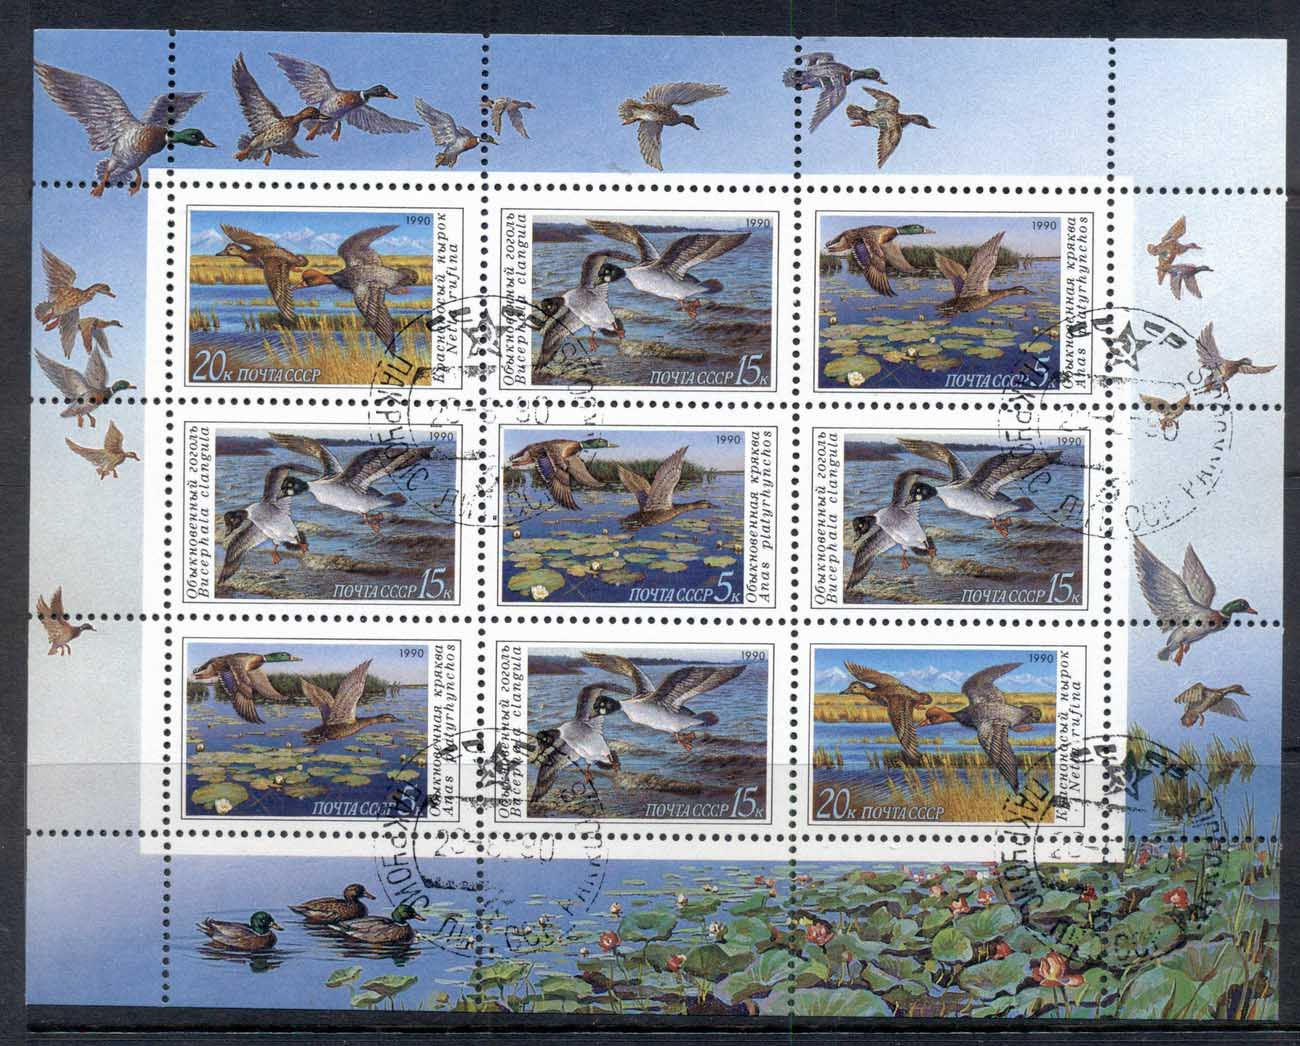 Russia 1990 Waterbirds, Ducks sheetlet CTO